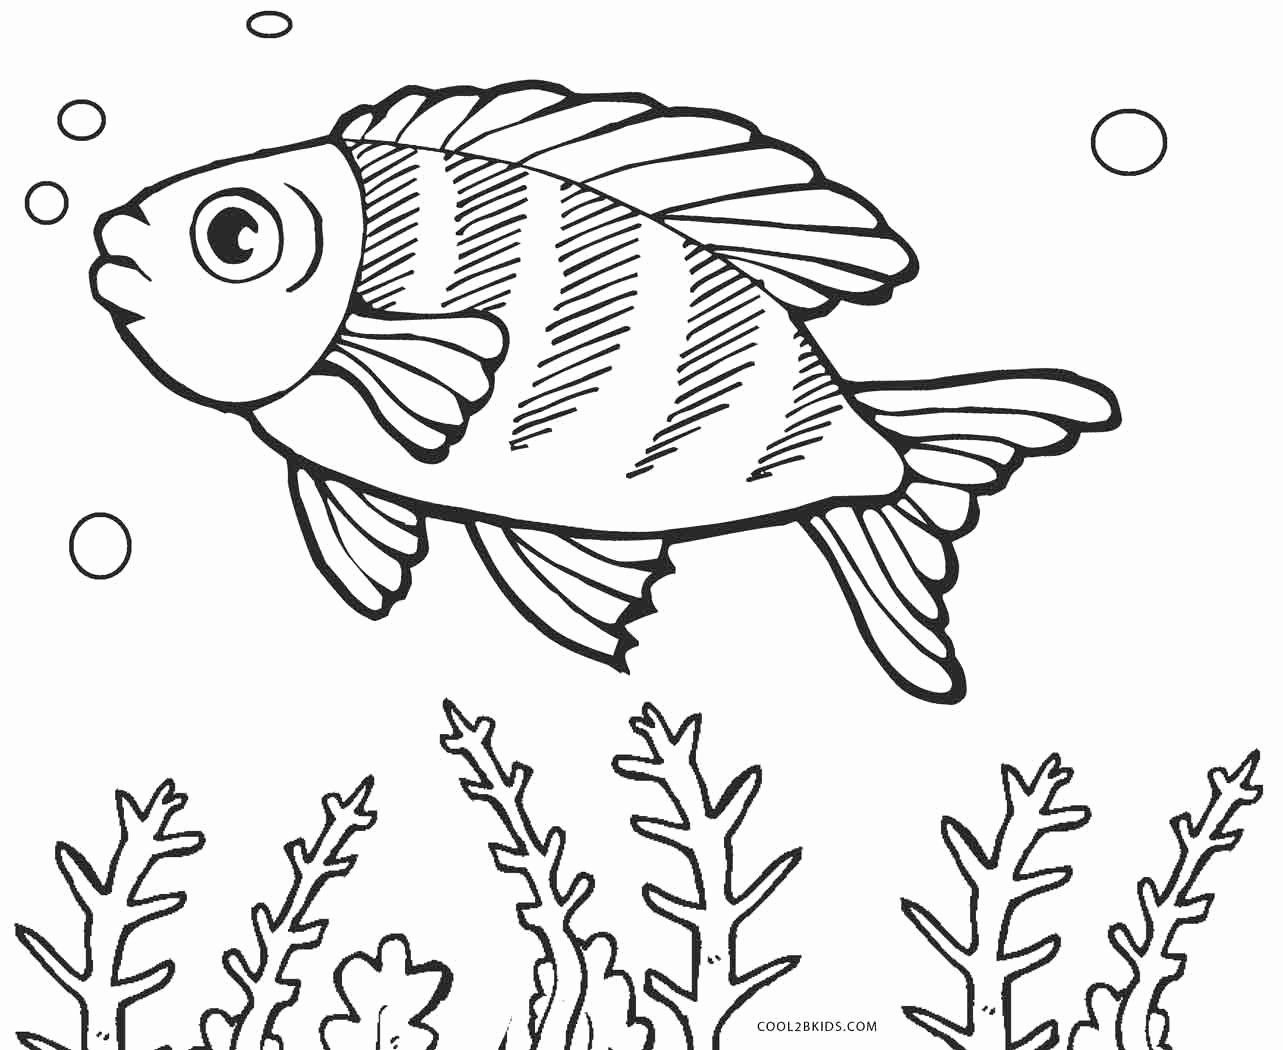 Coloring Page Of Fish Beautiful Free Printable Fish Coloring Pages For Kids Fish Coloring Page Animal Coloring Pages Fish Coloring Pages